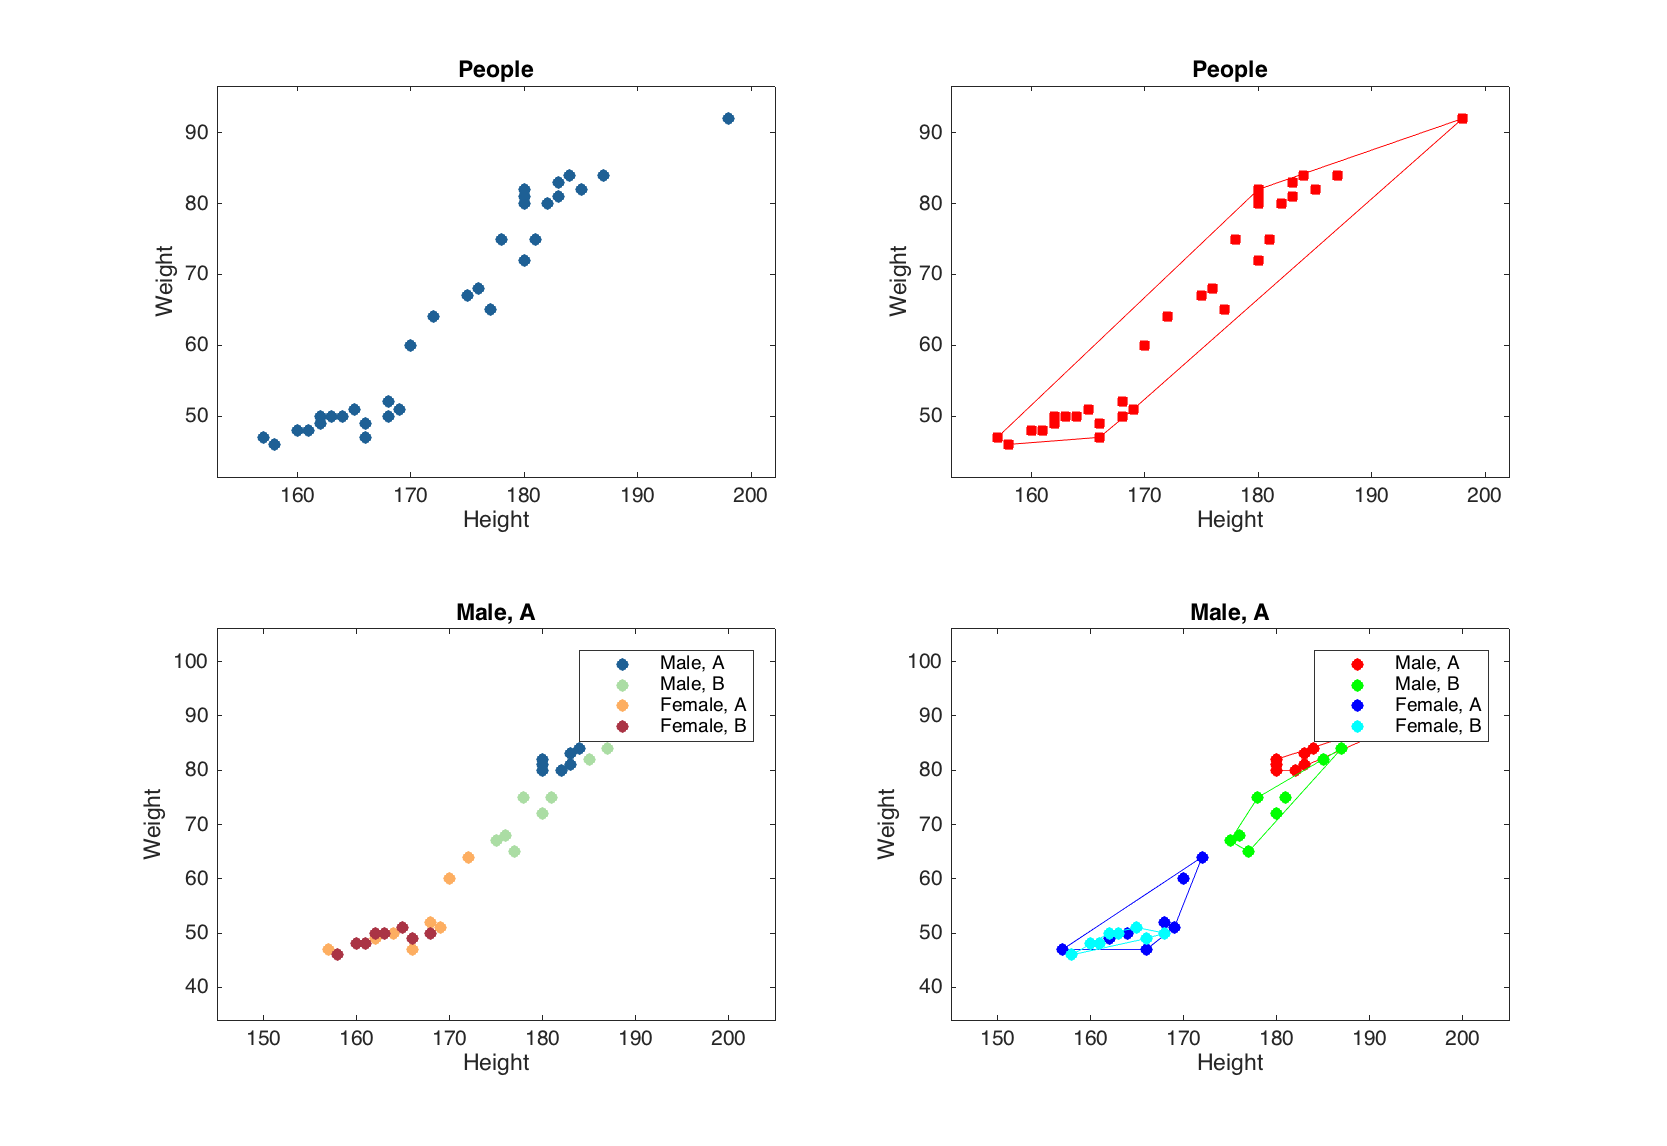 Group plots · Getting started with mdatools for MATLAB